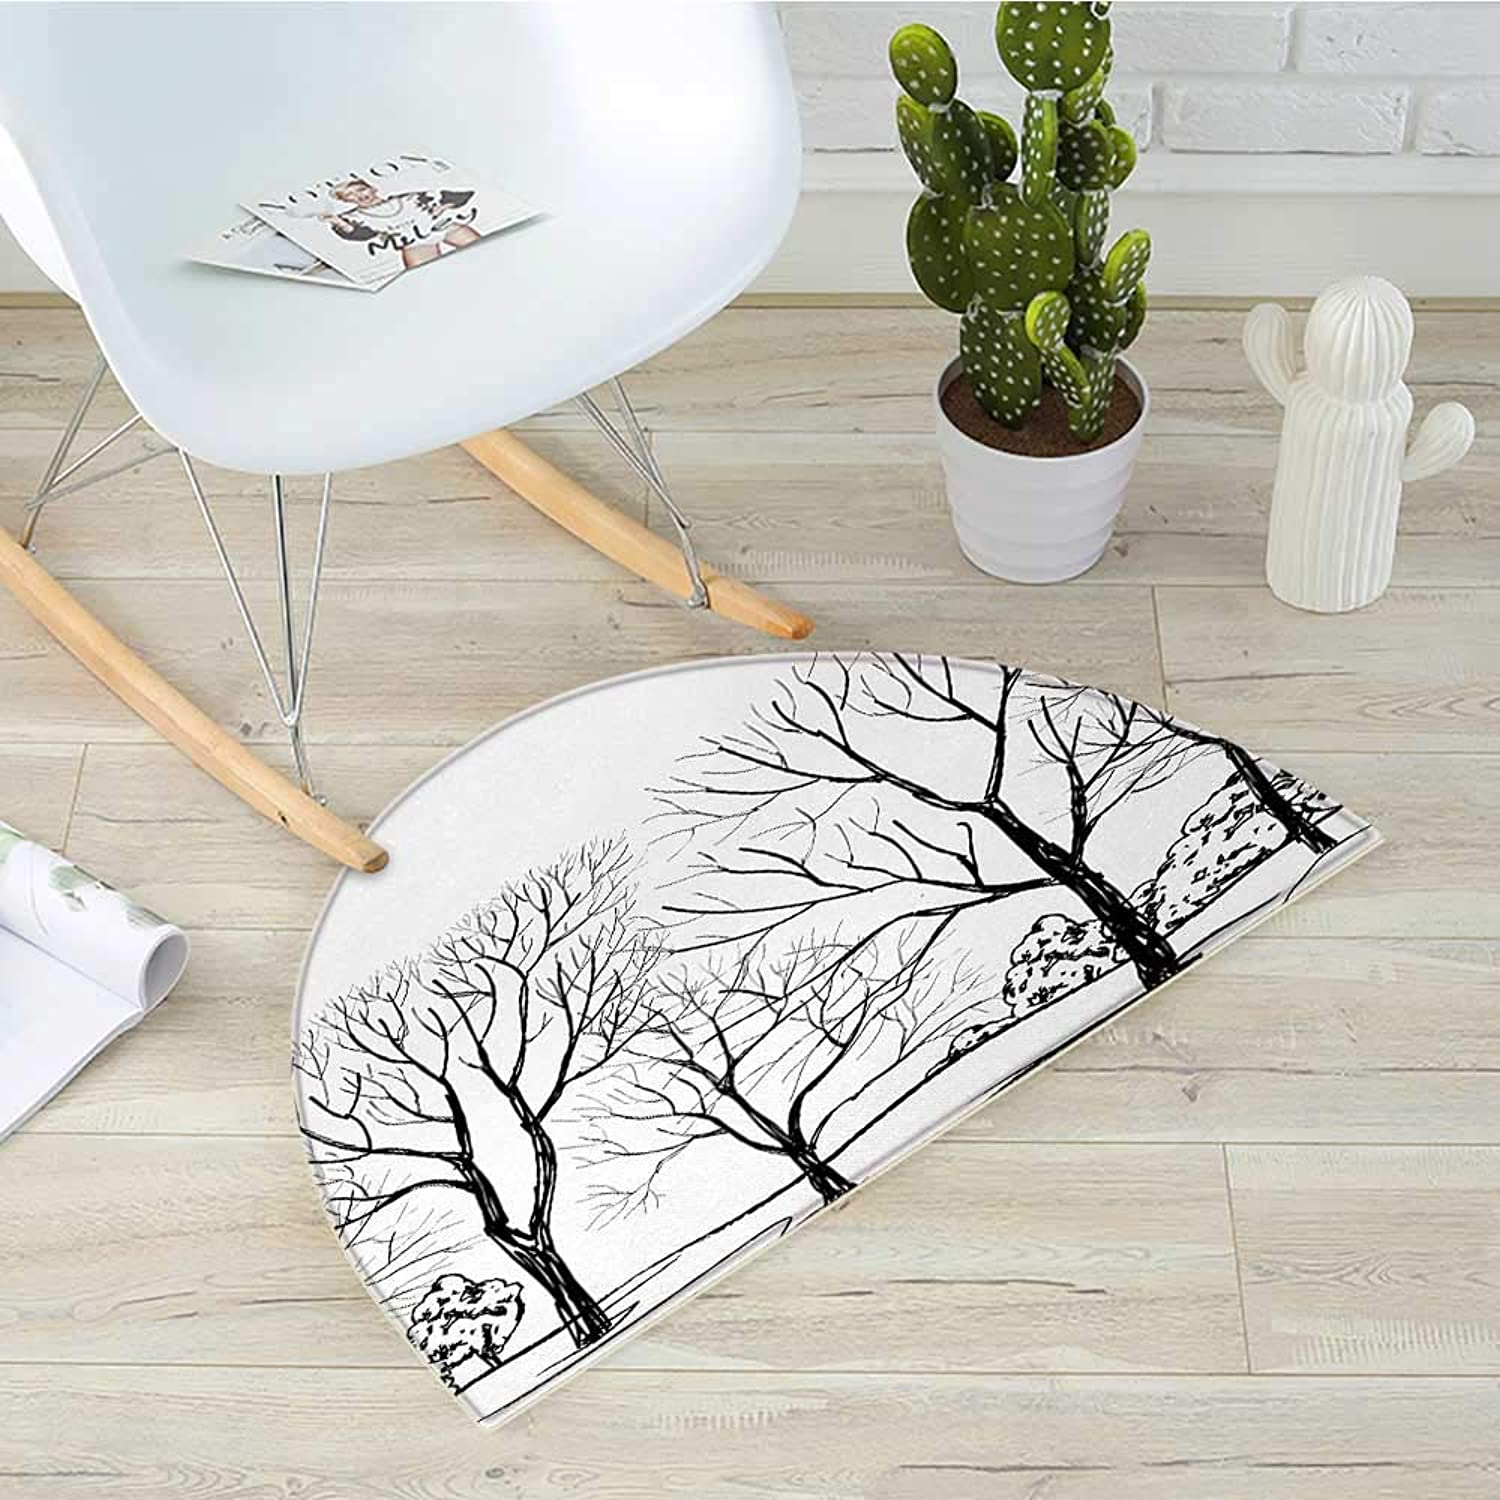 Landscape Half Round Door mats Tree Without Leaves Forest Branches Hand Drawn Illustration Autumn Landscape Bathroom Mat H 31.5  xD 47.2  Black White